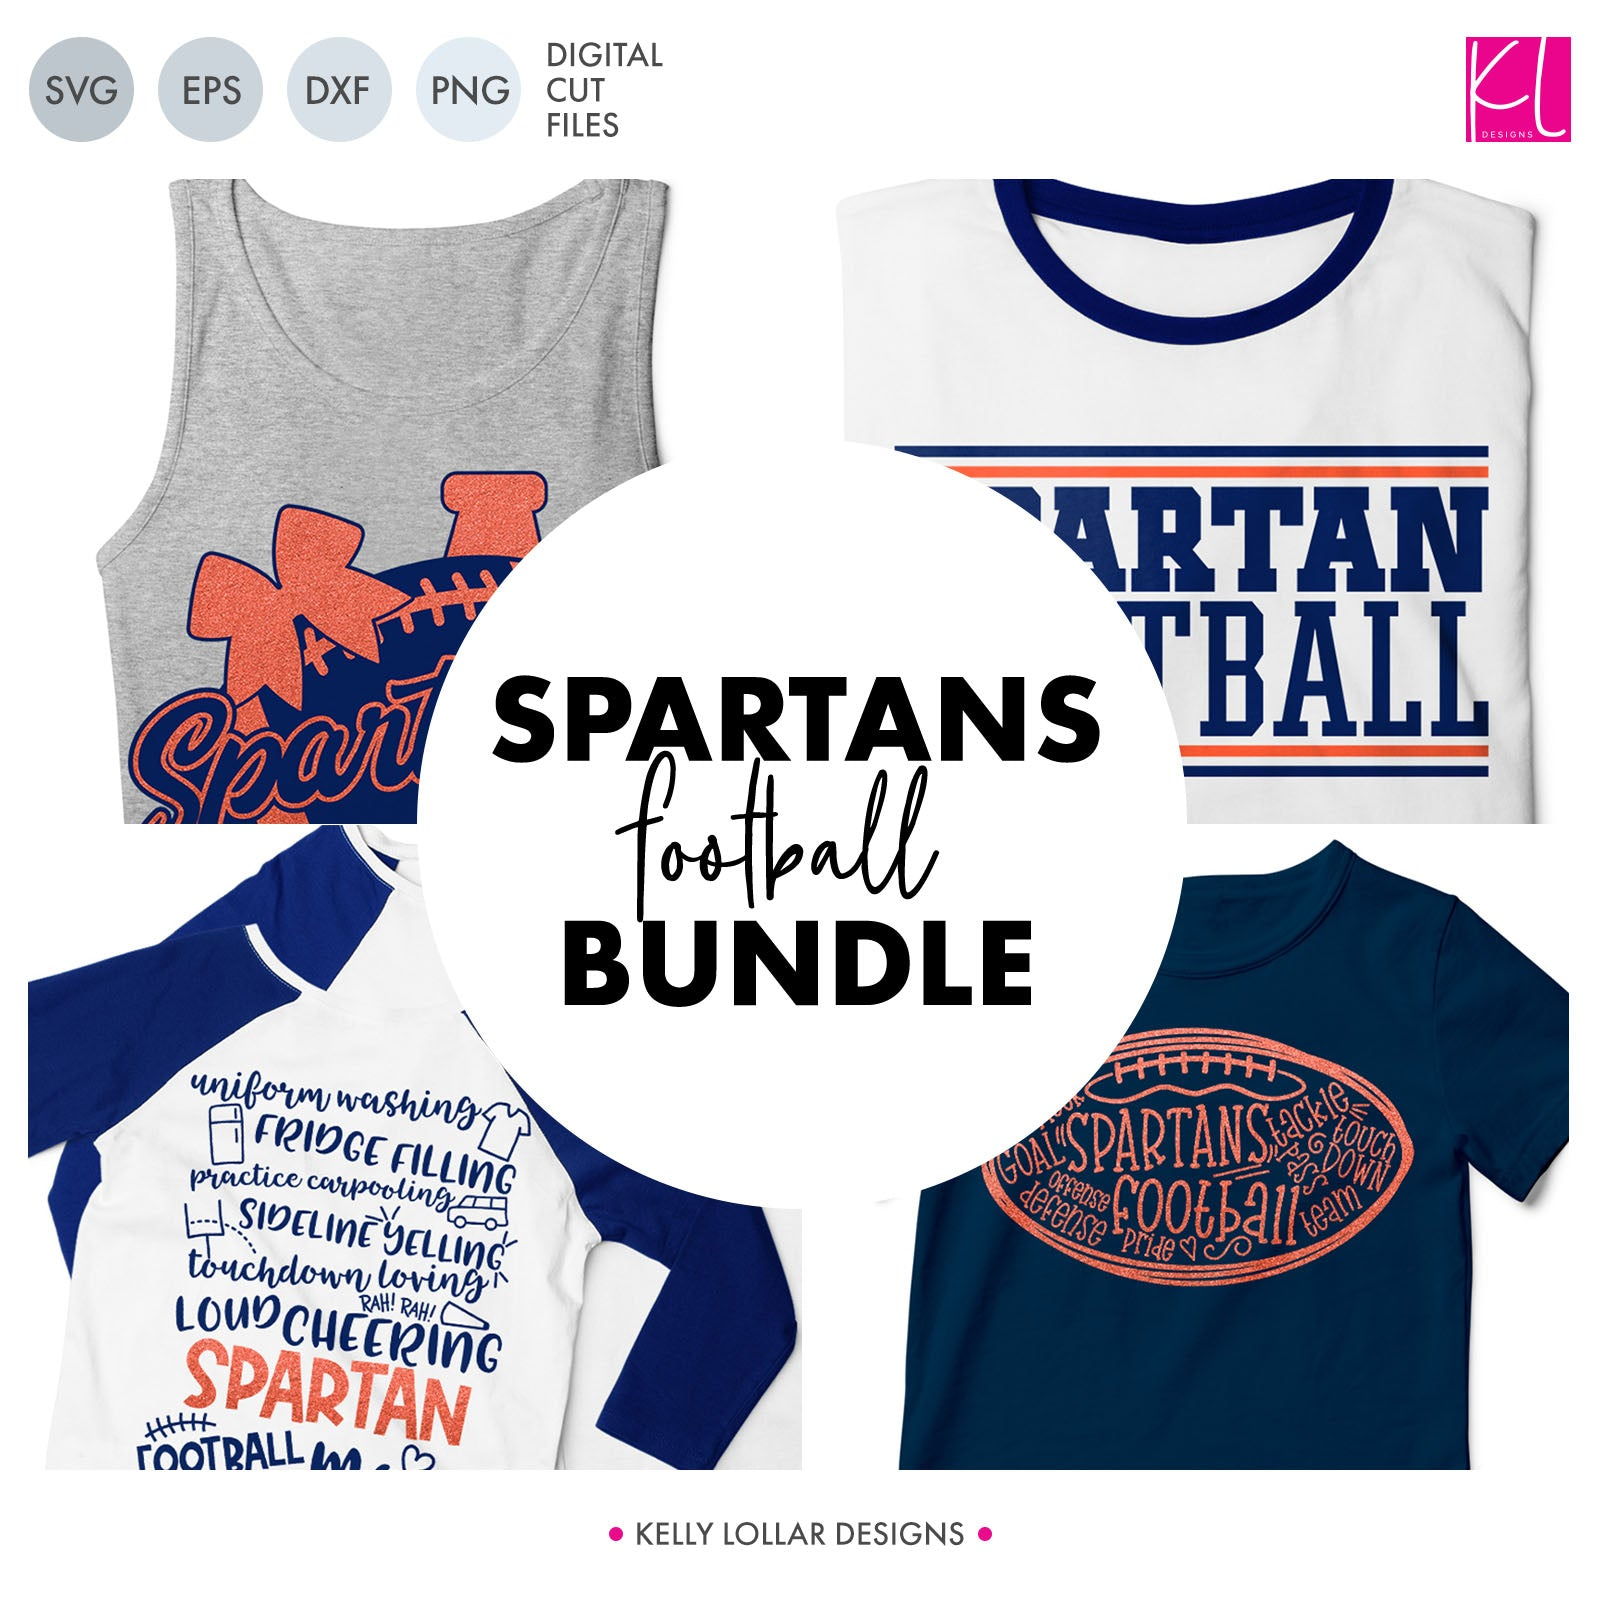 Spartans Football Bundle | SVG DXF EPS PNG Cut Files This fifteen piece Spartan Football Bundle was created with school crafters in mind. Create an assortment of spirit shirts with choices ranging from family designs to monograms to classic. 15